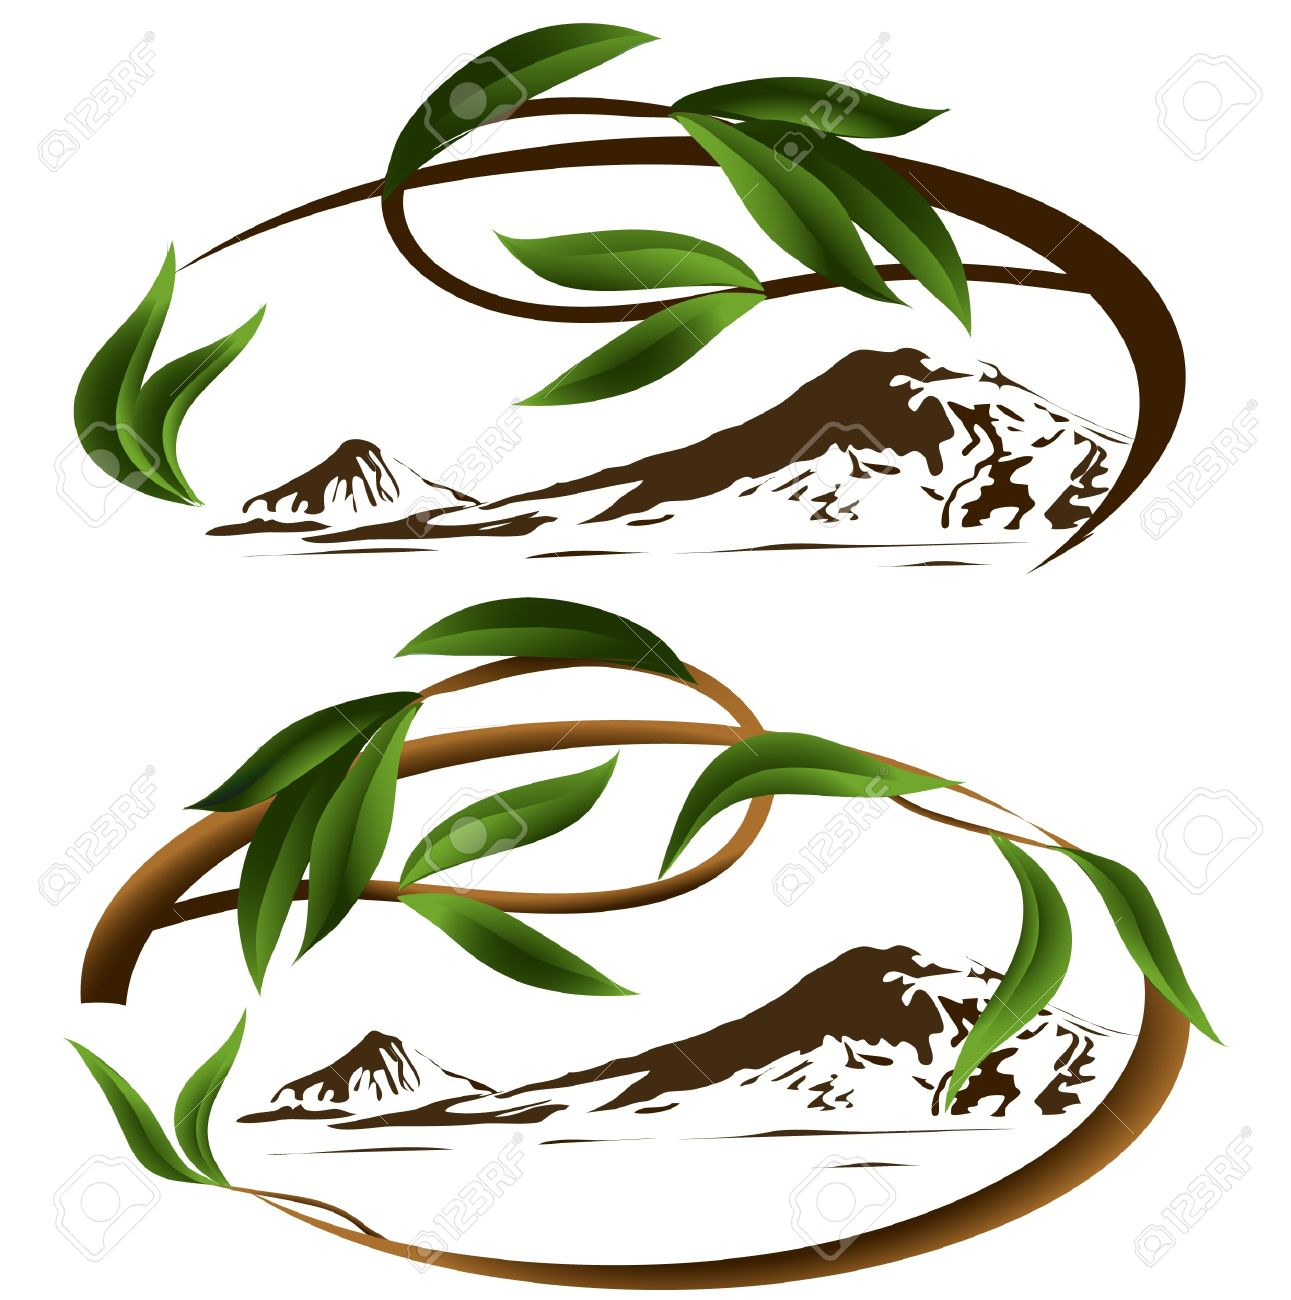 Mountain Ararat Branch Leaf Tree Royalty Free Cliparts, Vectors.